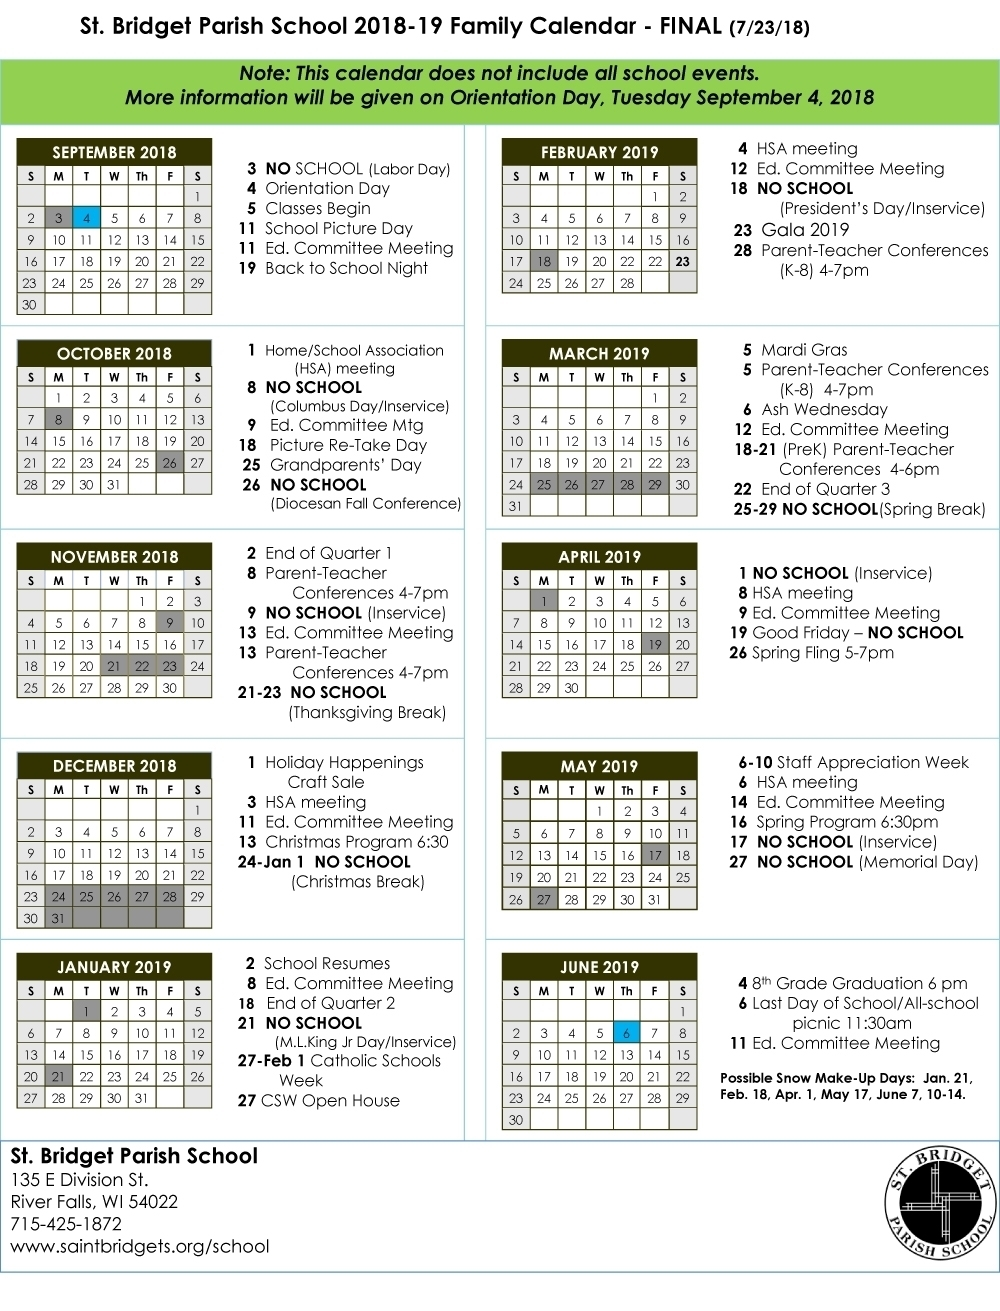 Catholic Liturgical Calendar 2020 Pdf - Calendar Inspiration inside Looking For A Catholic Liturgical Calendar For 2020